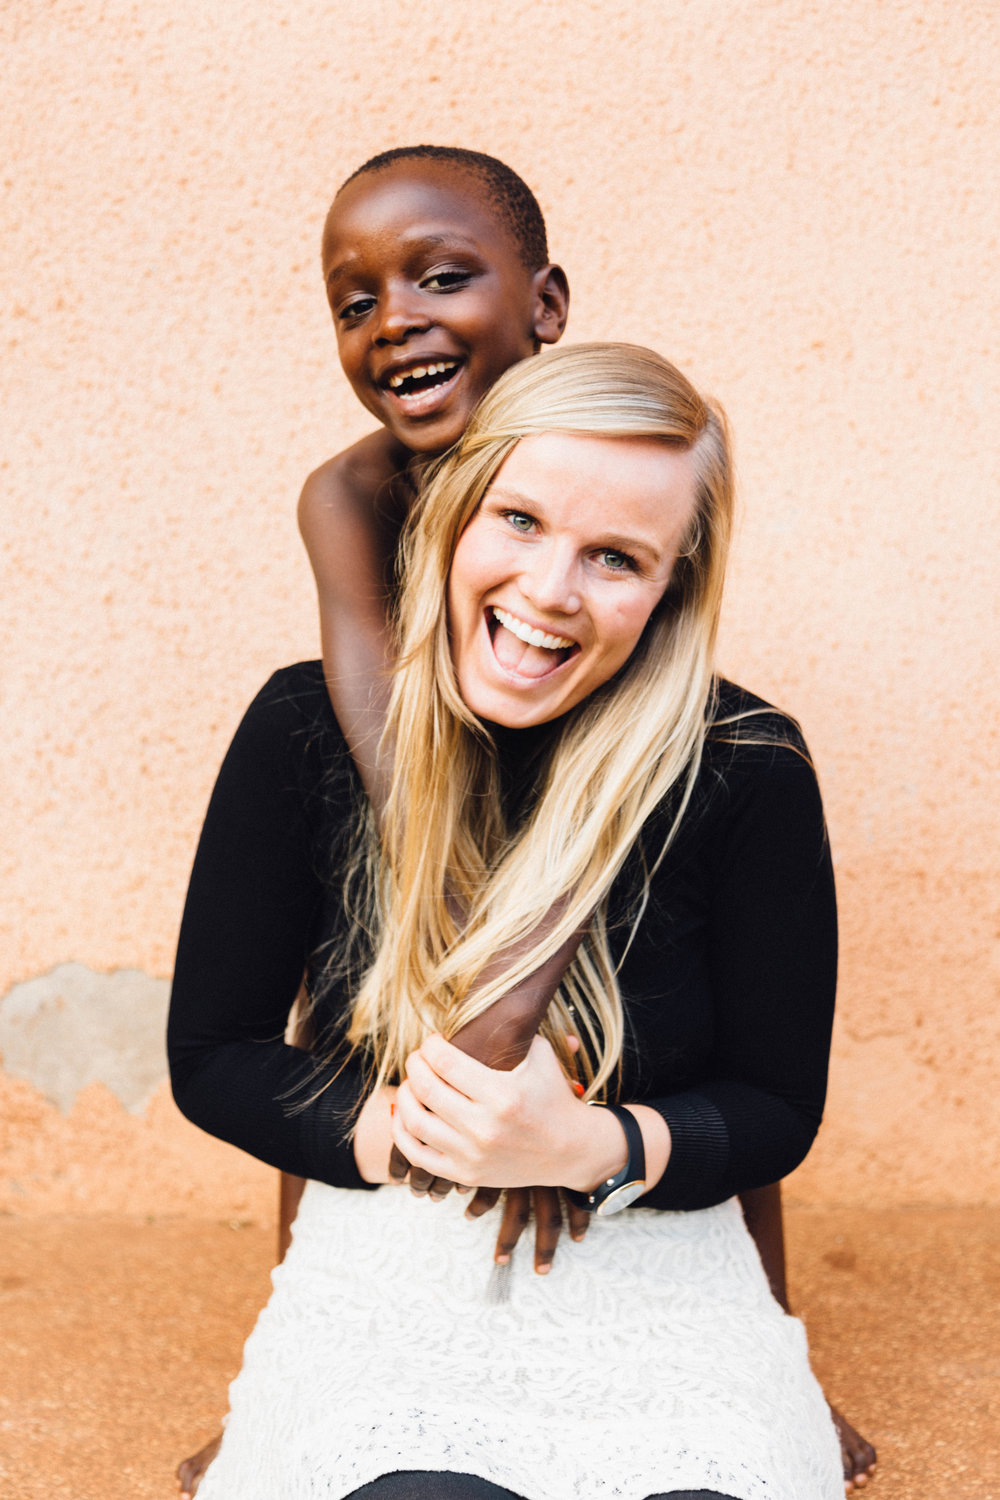 Sarah Nininger: President Sarah has been the visionary and driving force behind Action in Africa since inception, serving as the organization's President for over a decade. As President, Sarah is responsible for everything from strategic planning, fundraising, and operational execution to participating in dance classes at the Center and sleeping at the hospital when our students get malaria. Sarah has spent extensive time studying non-profit management, taking undergraduate courses on education-based non-profit strategy and volunteering for organizations like the Special Olympics and Sexual Assault Victims Services. While her broader objective is to provide students and community members with educational opportunity and social services, there has always been a special place in Sarah's heart for those with special needs. This passion, informed by personal and academic experience, has driven Sarah to institute various programs at Action in Africa tailored towards the sick and disabled, including a Women to Women Group for vulnerable women and a fund to support children with special needs. Likewise, Sarah fervently believes in the importance of personal empowerment, viewing Action in Africa as an instrument to help students realize their own potential. In particular, Sarah has focused her efforts on empowering high schoolers, working with career-oriented Ugandan professionals to put on panels for our students. By introducing students to doctors, creative artists, and entrepreneurs who grew up in villages similar to Nakuwadde and households like their own, Sarah has inspired our students to take control of their lives and dream bigger. Sarah, who writes in her journal every day, graduated from Chapman University with a degree in Integrated Educational Studies in 2012.